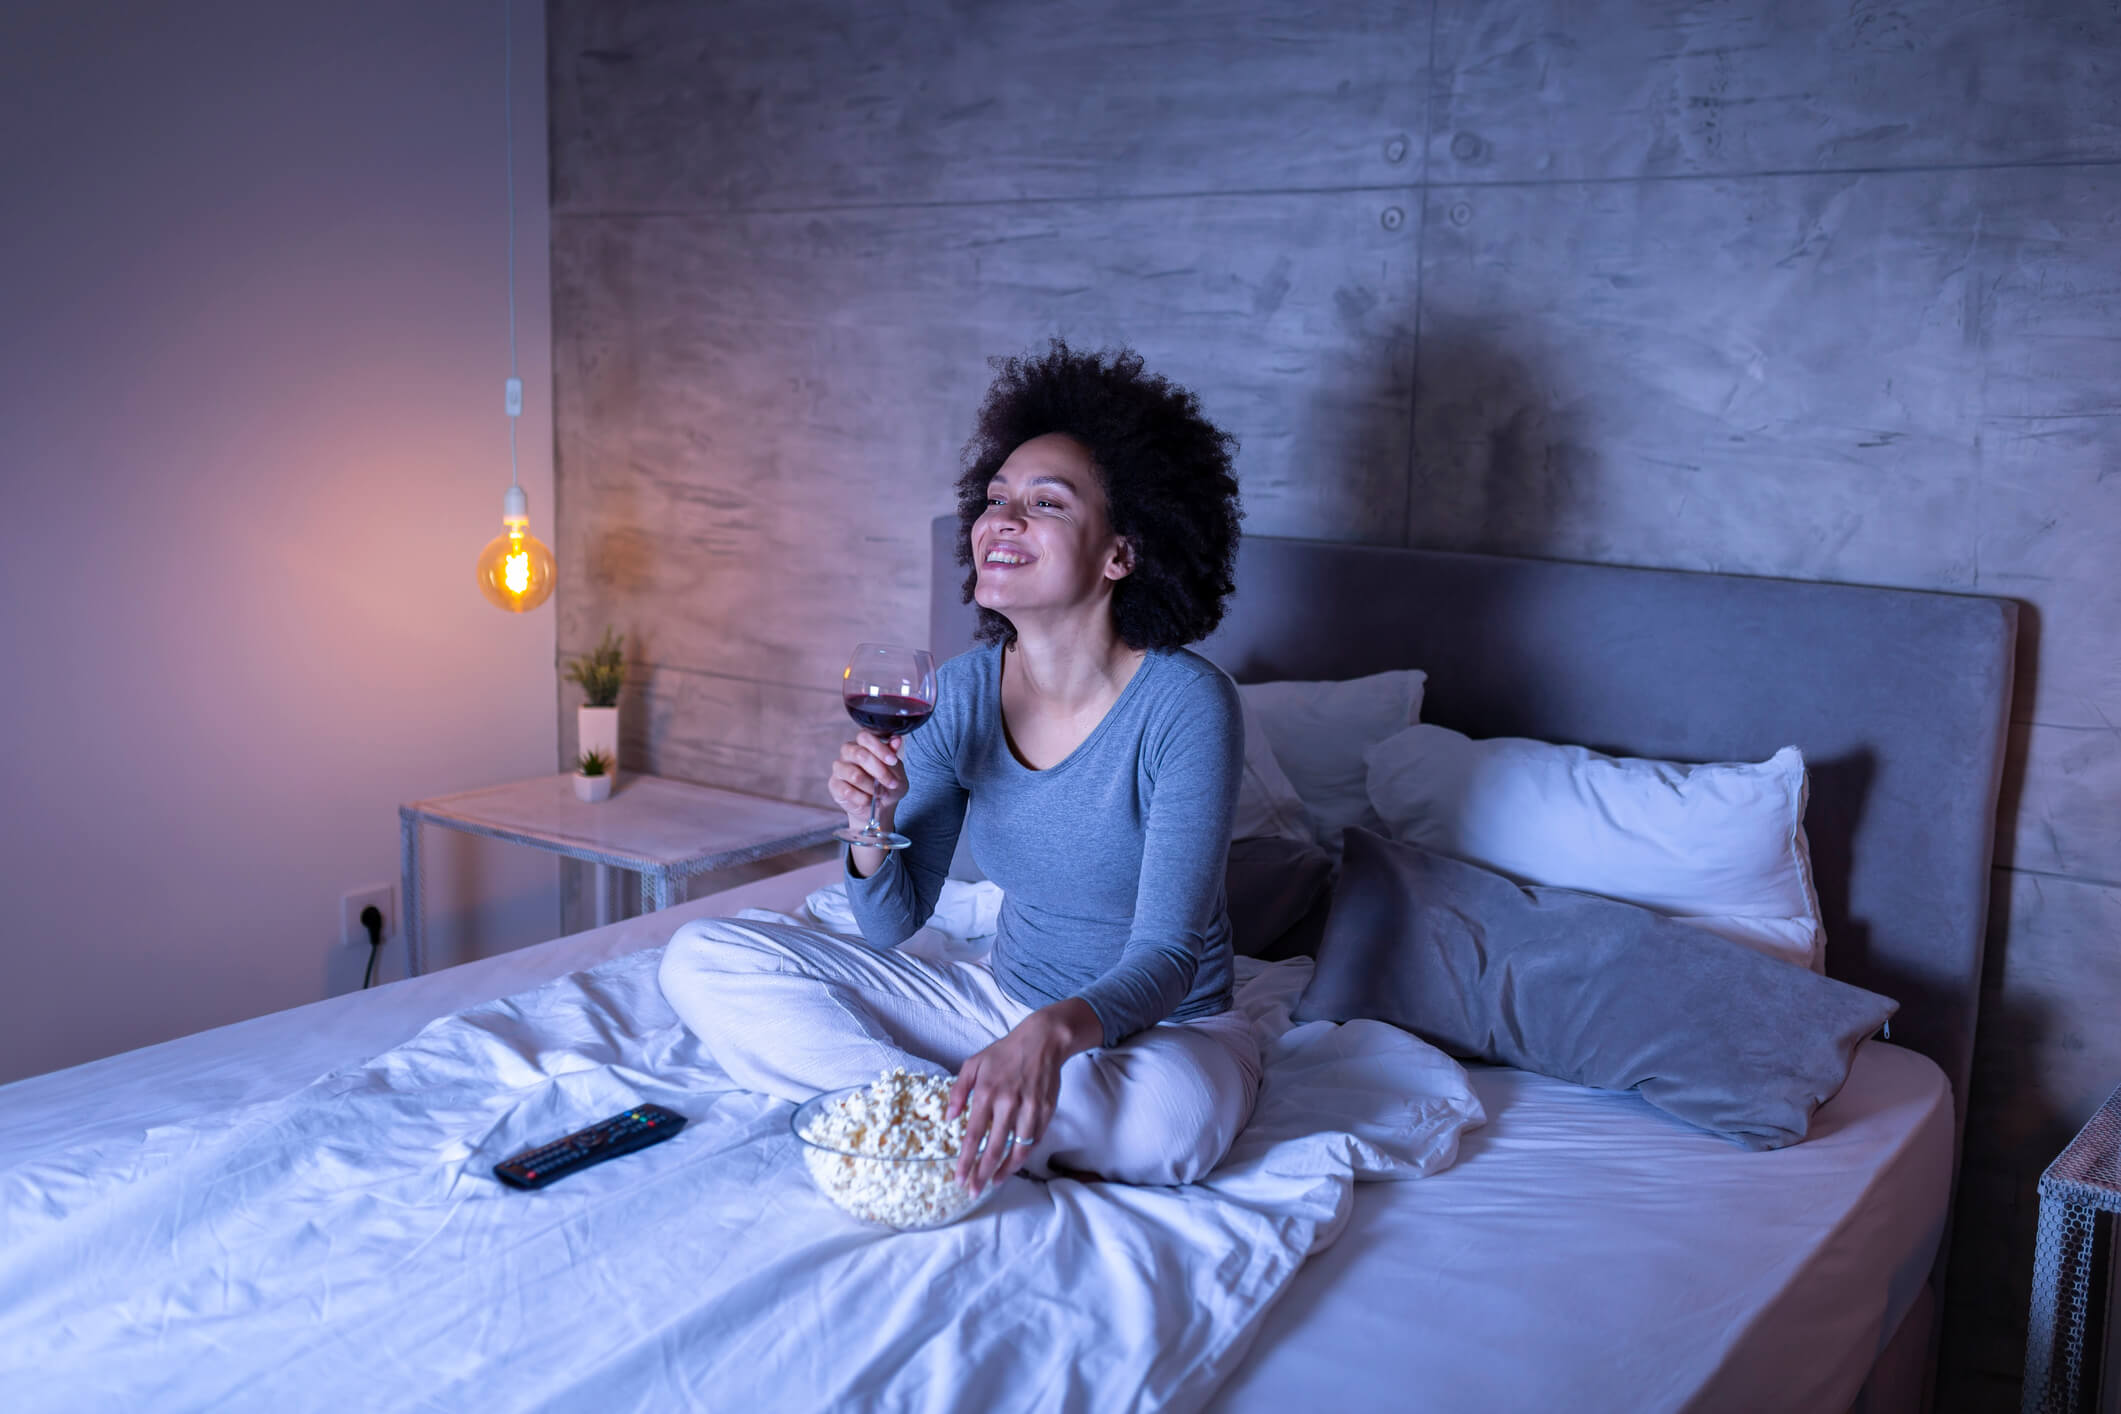 Woman sitting on bed eating popcorn and drinking wine while laughing at movie on TV